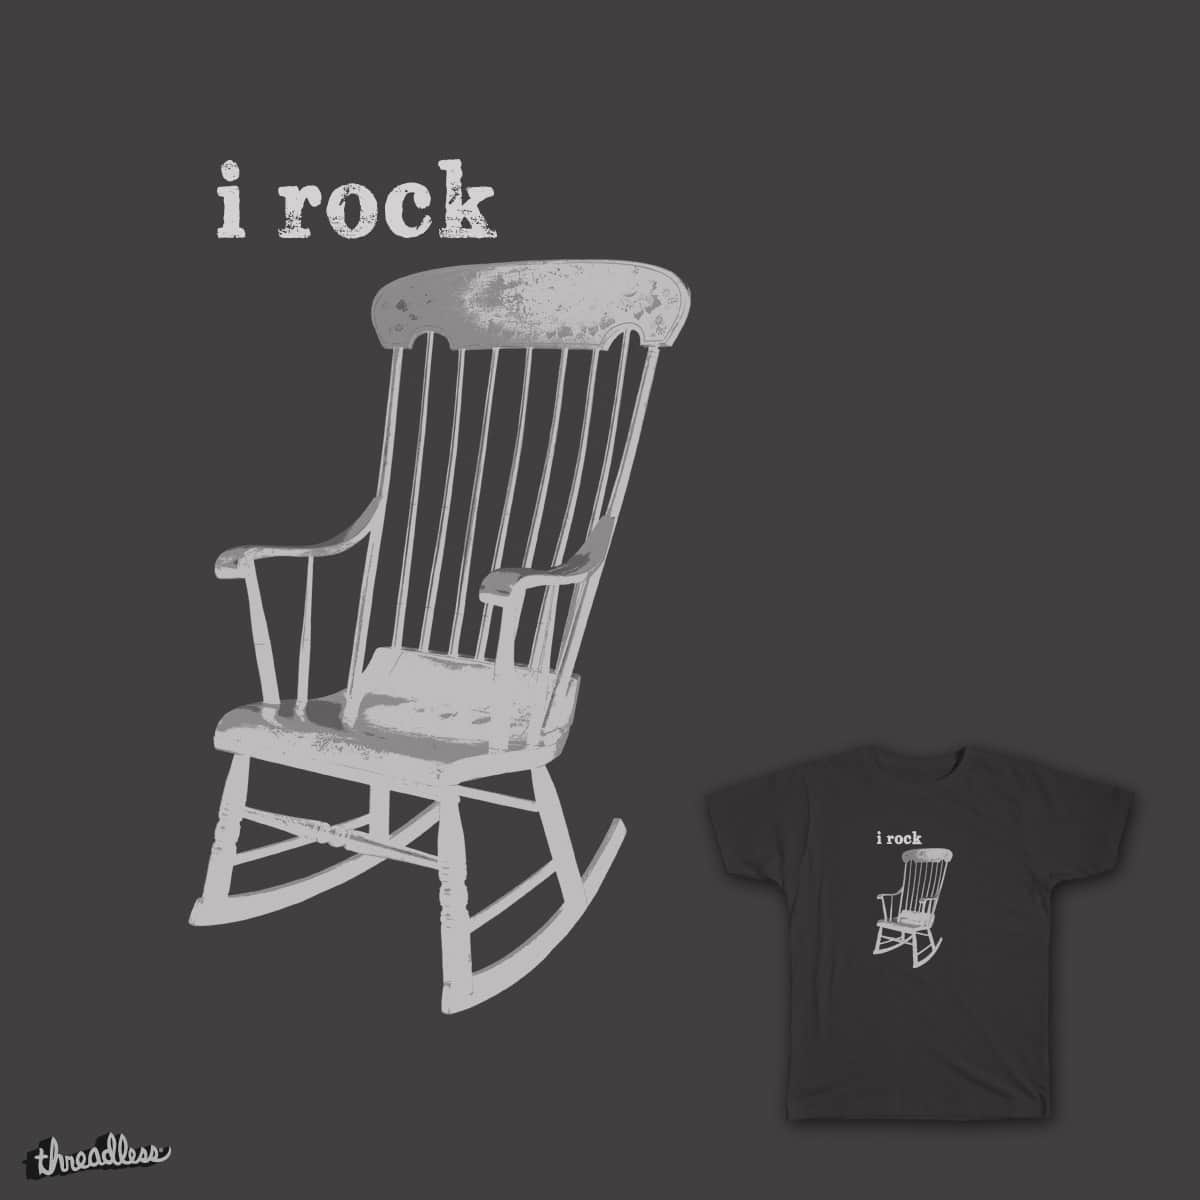 i rock by chris_cannon on Threadless